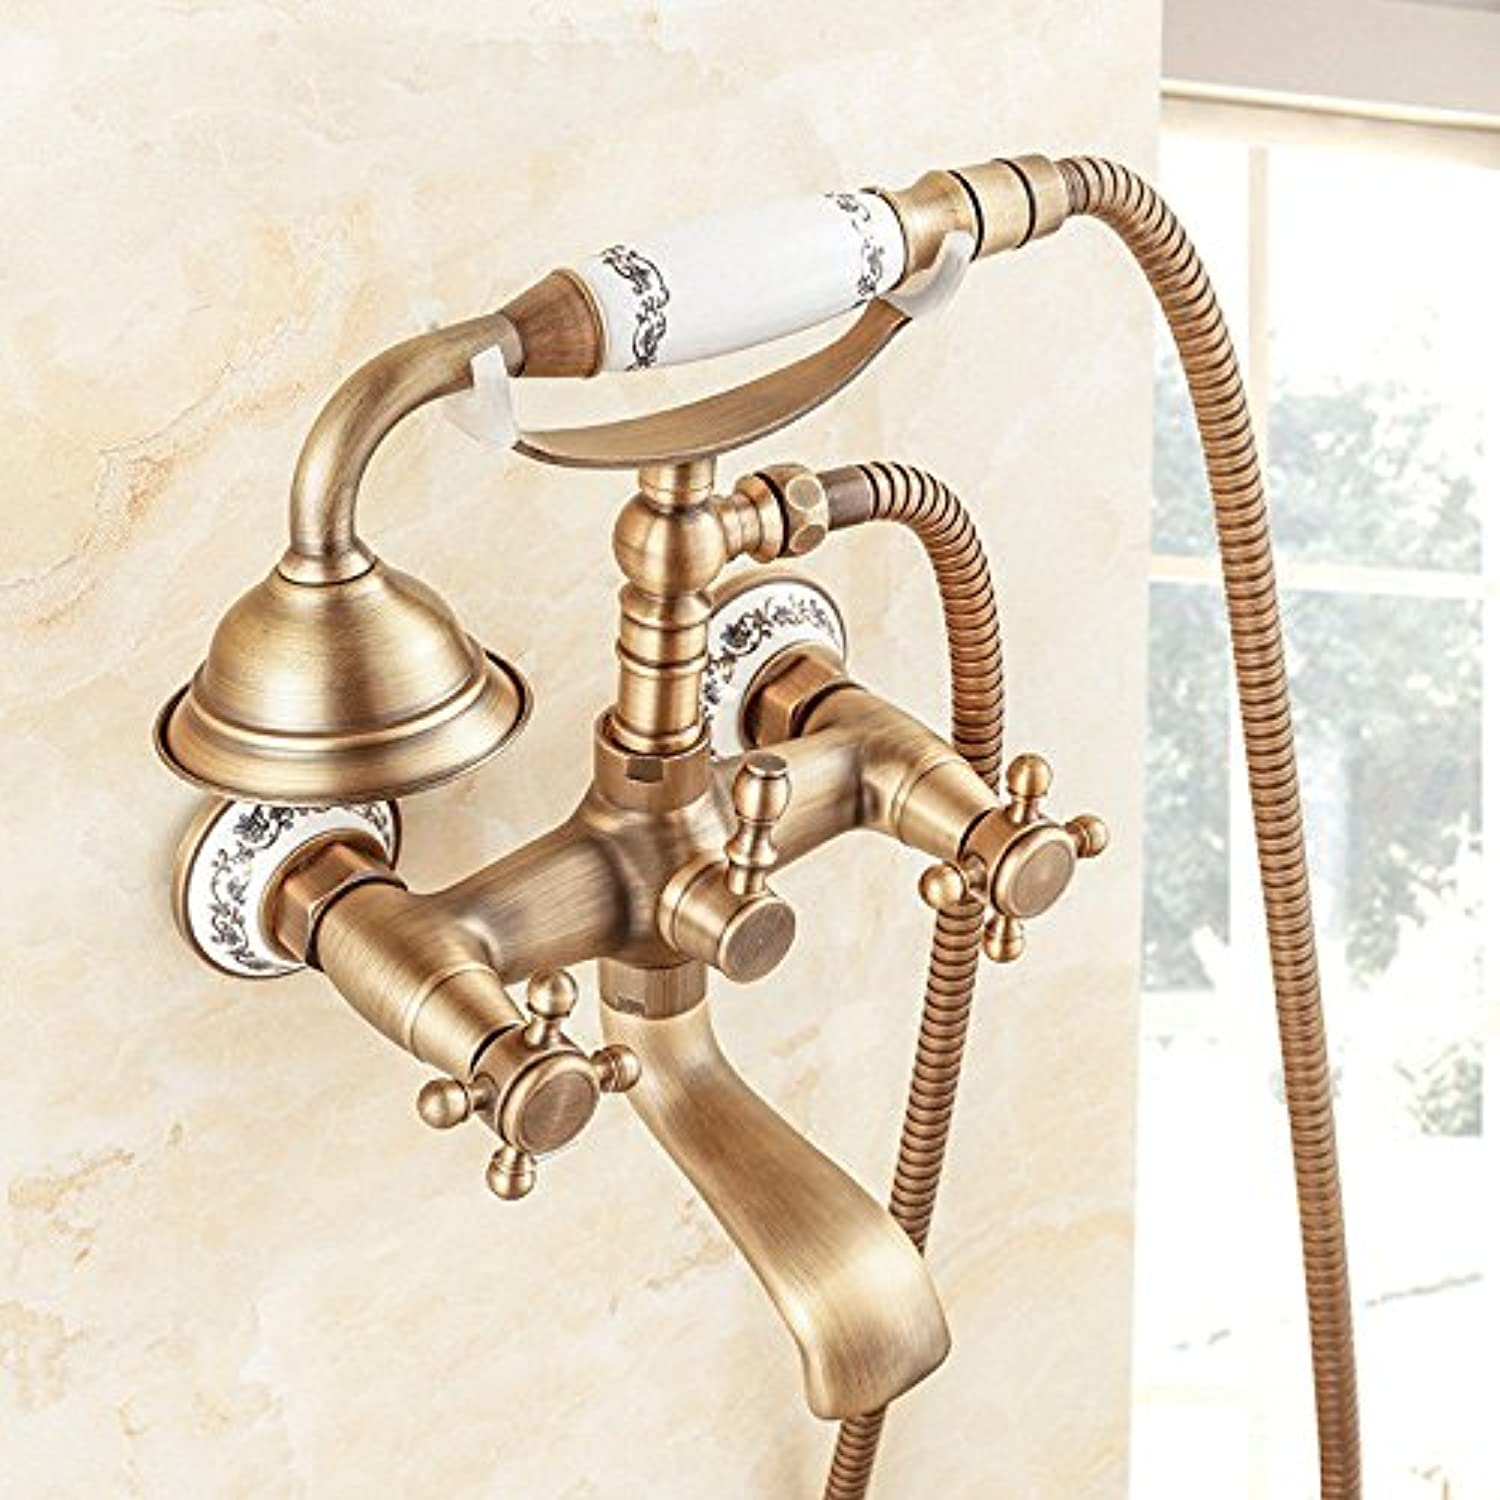 Lalaky Taps Faucet Kitchen Mixer Sink Waterfall Bathroom Mixer Basin Mixer Tap for Kitchen Bathroom and Washroom All-Copper Antique Wall-Mounted Shower Head